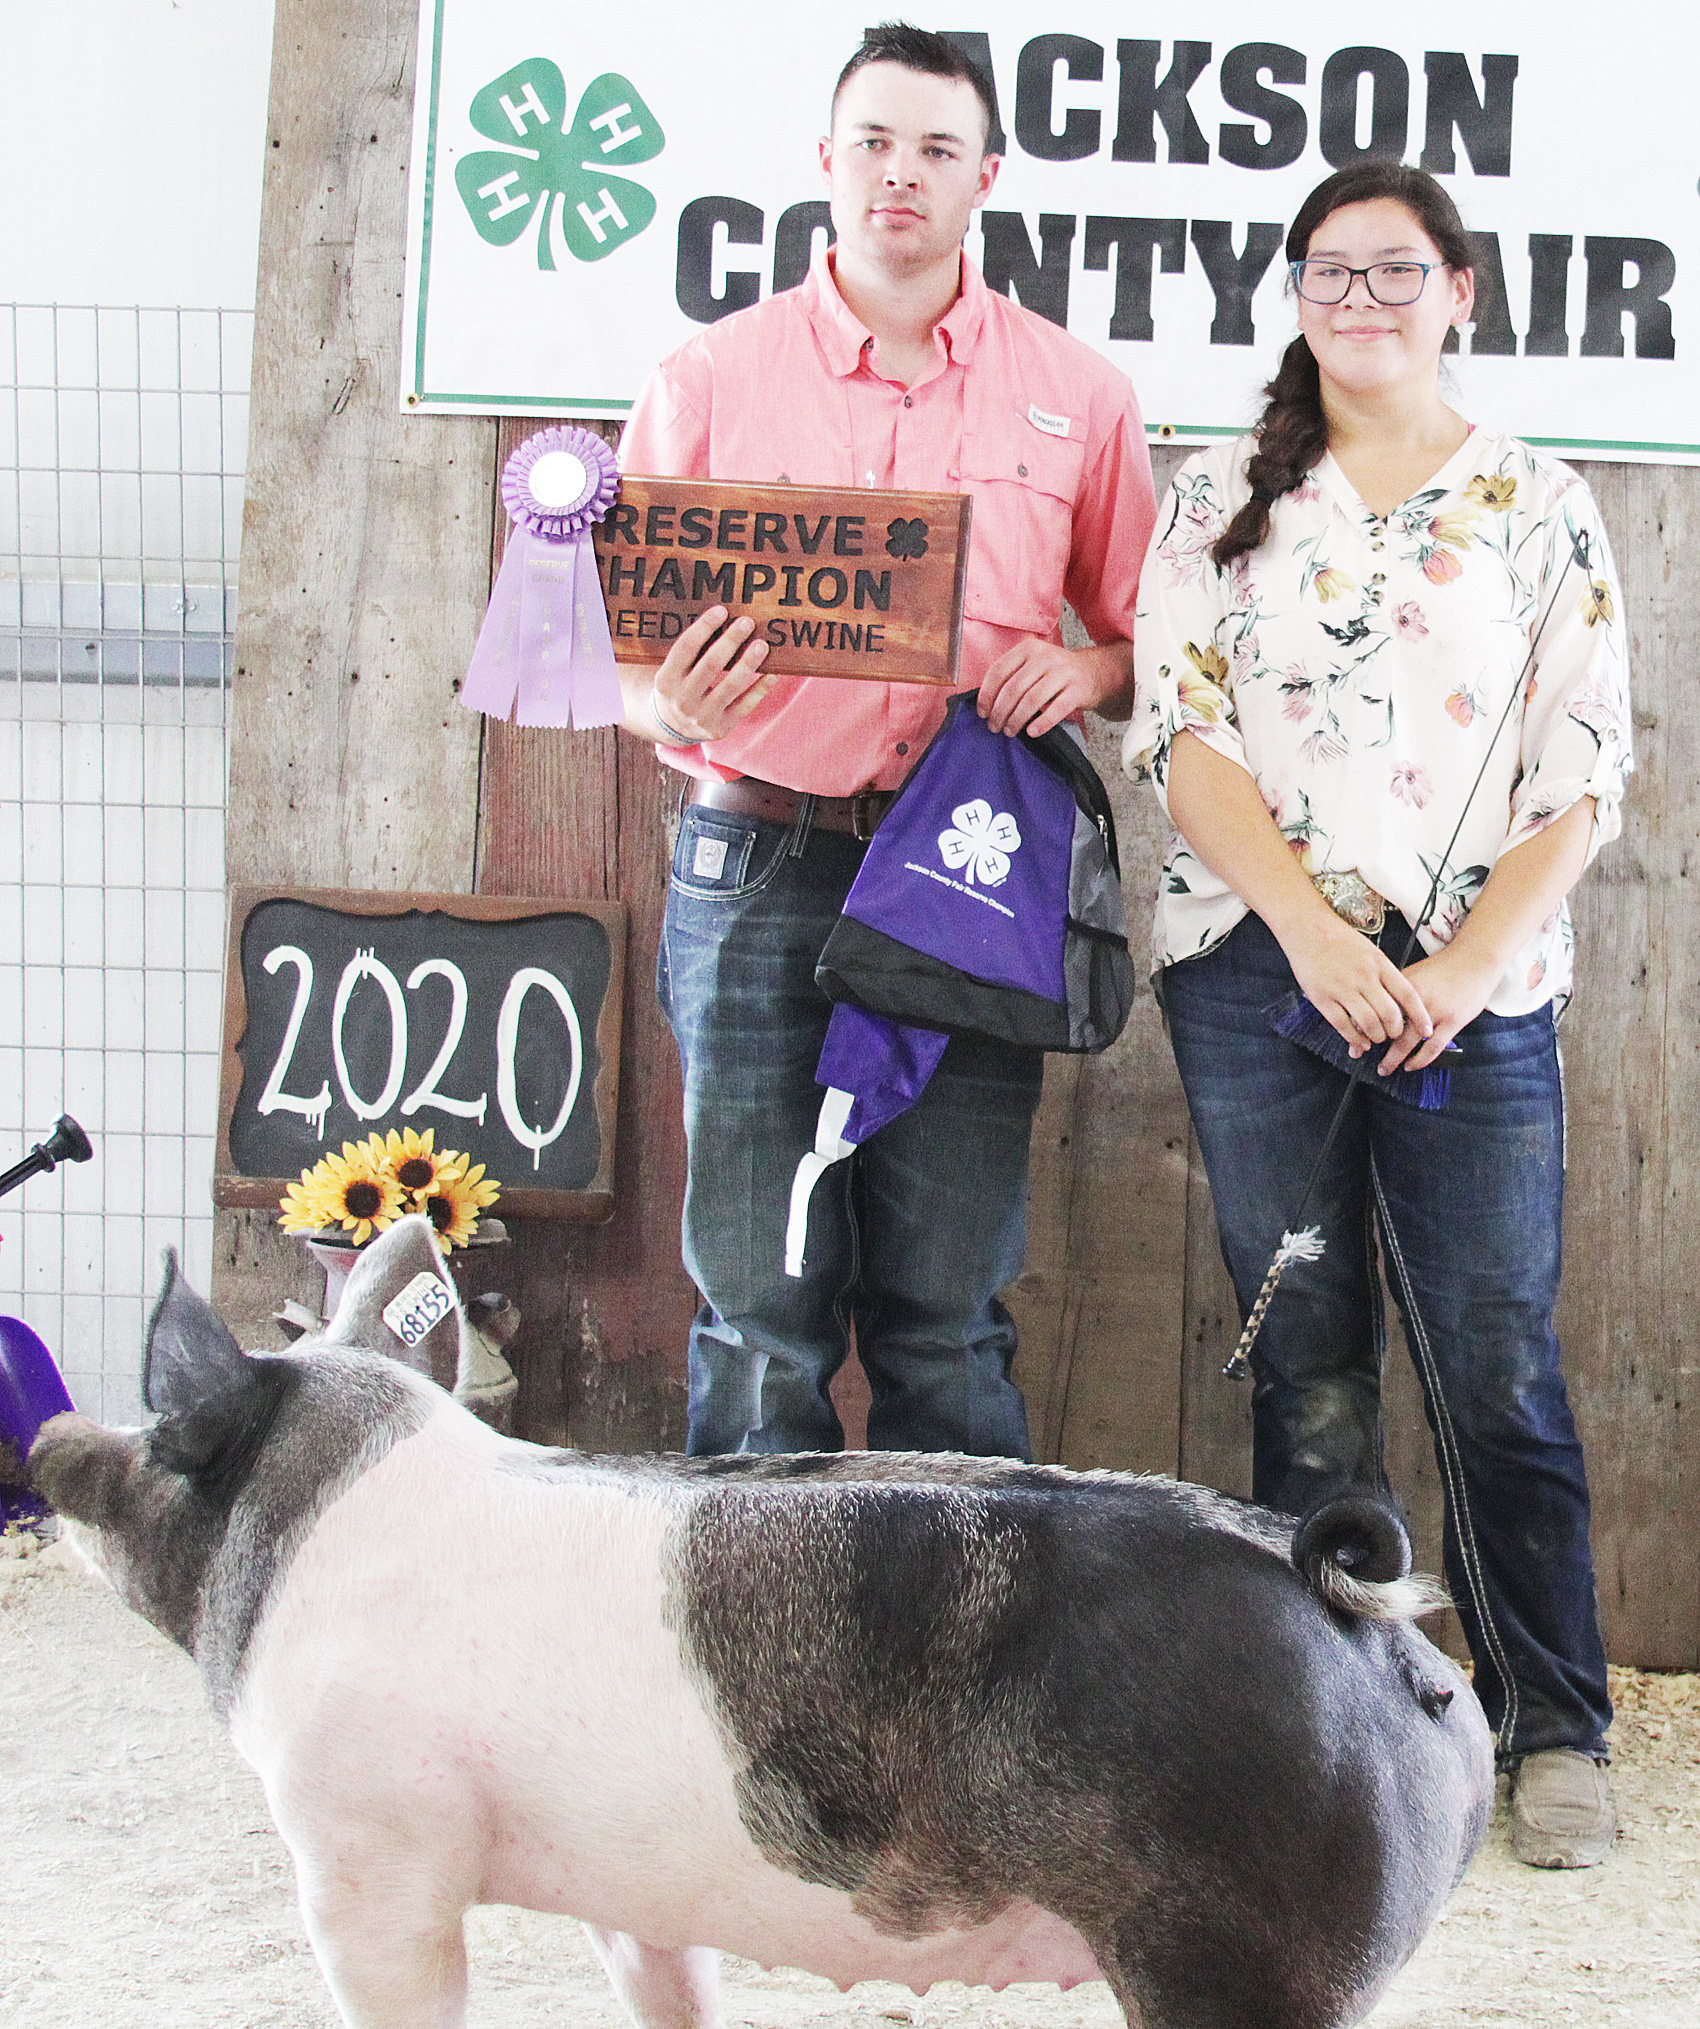 Kailei Mitchell of the Mayetta Mustangs 4-H Club showed the Reserve Grand Champion overall breeding gilt at the 2020 Jackson County Fair.